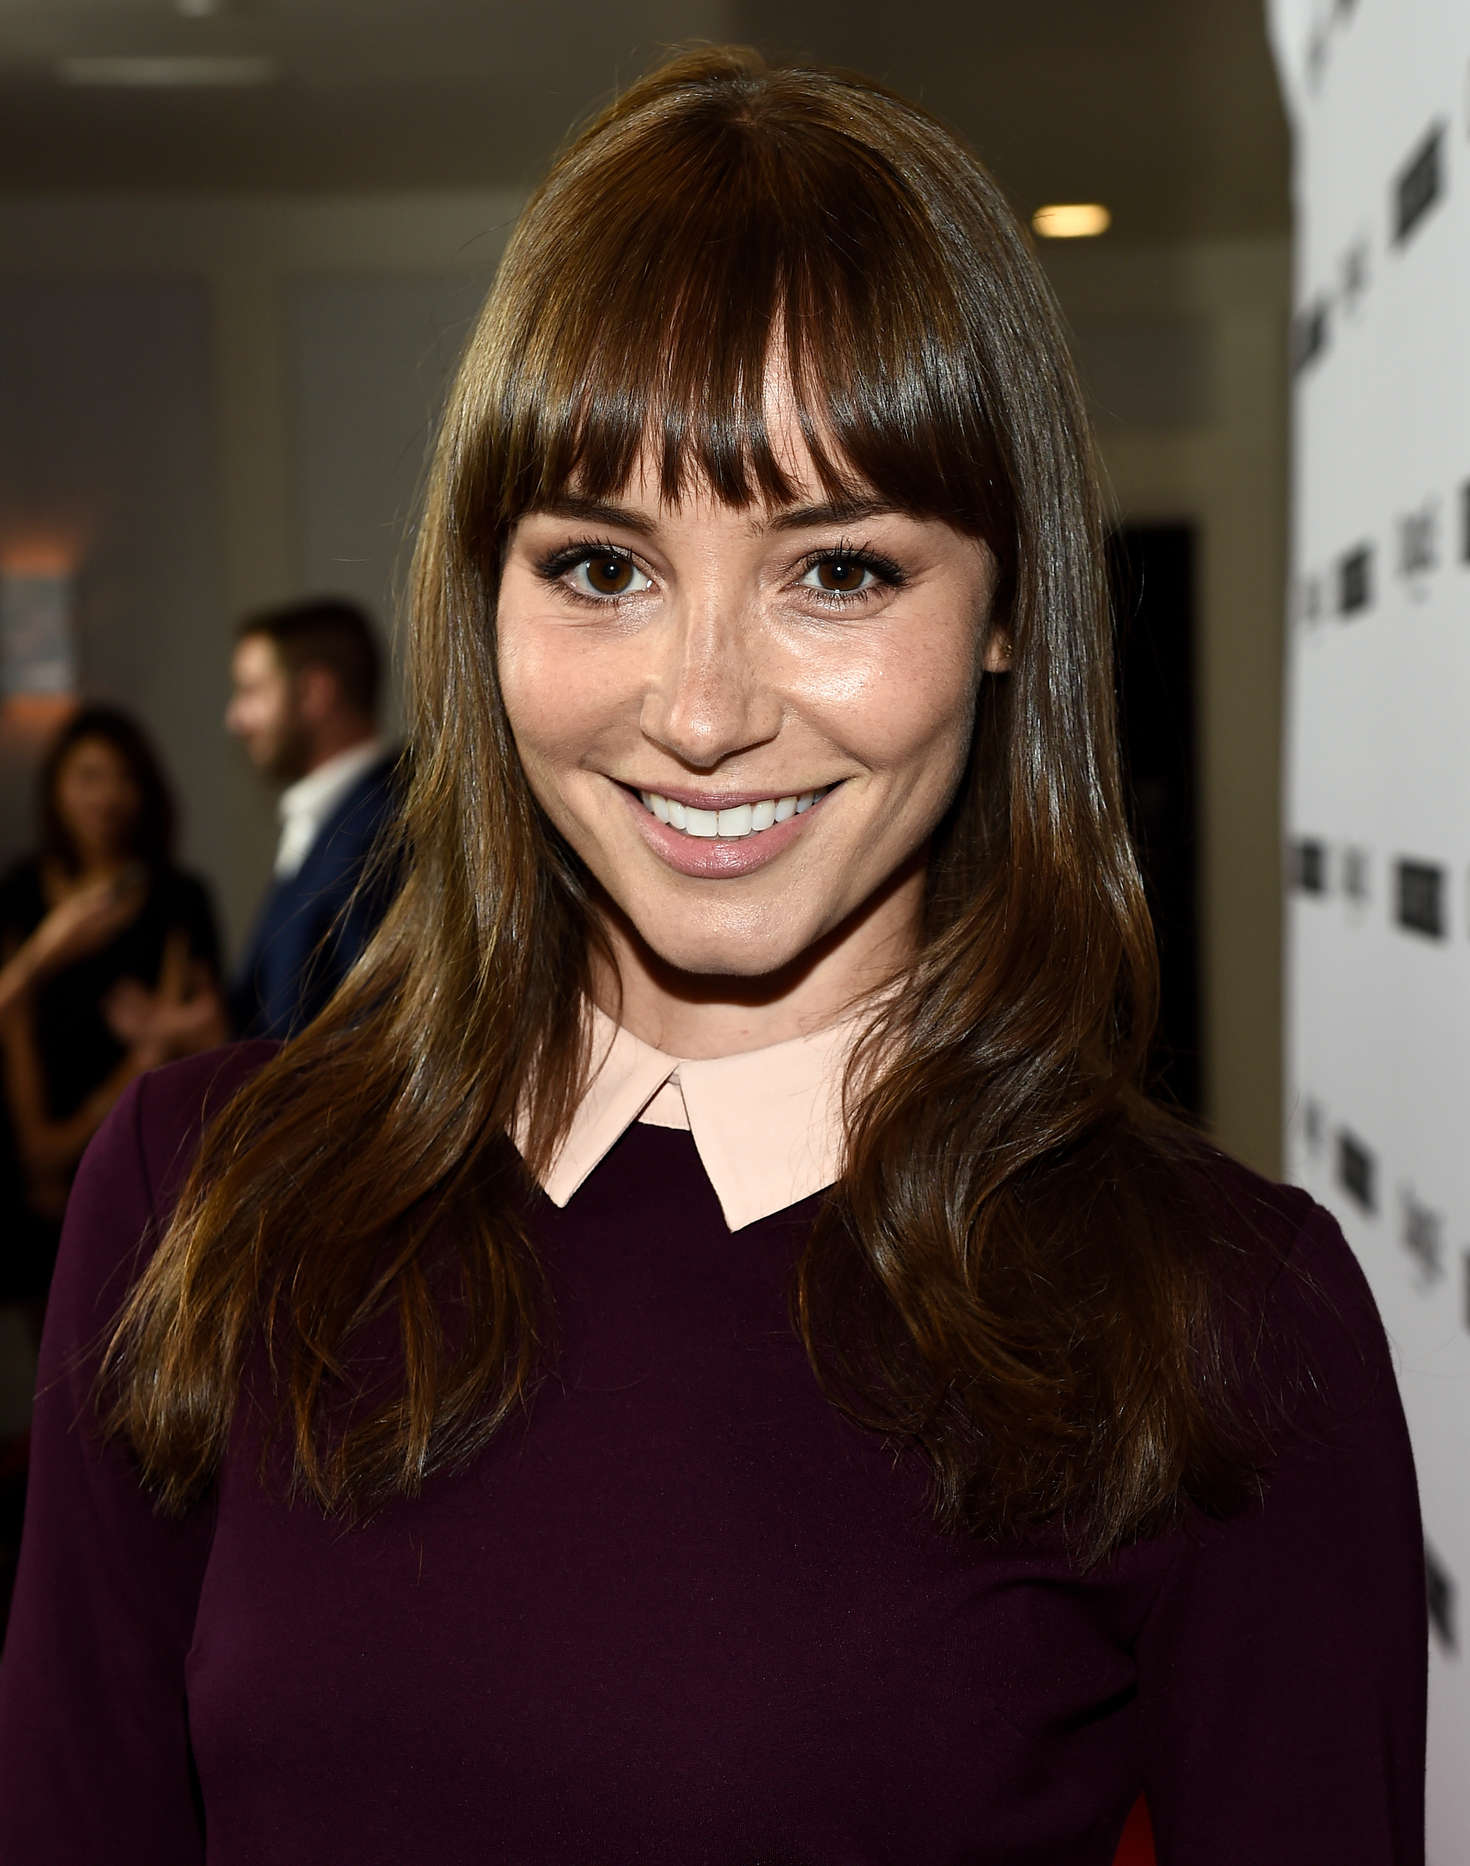 jocelin donahue interviewjocelin donahue instagram, jocelin donahue height, jocelin donahue, jocelin donahue facebook, jocelin donahue tumblr, jocelin donahue married, jocelin donahue commercial, jocelin donahue insidious 2, jocelin donahue imdb, jocelin donahue nudography, jocelin donahue twitter, jocelin donahue fitbit, jocelin donahue net worth, jocelin donahue boyfriend, jocelin donahue biography, jocelin donahue interview